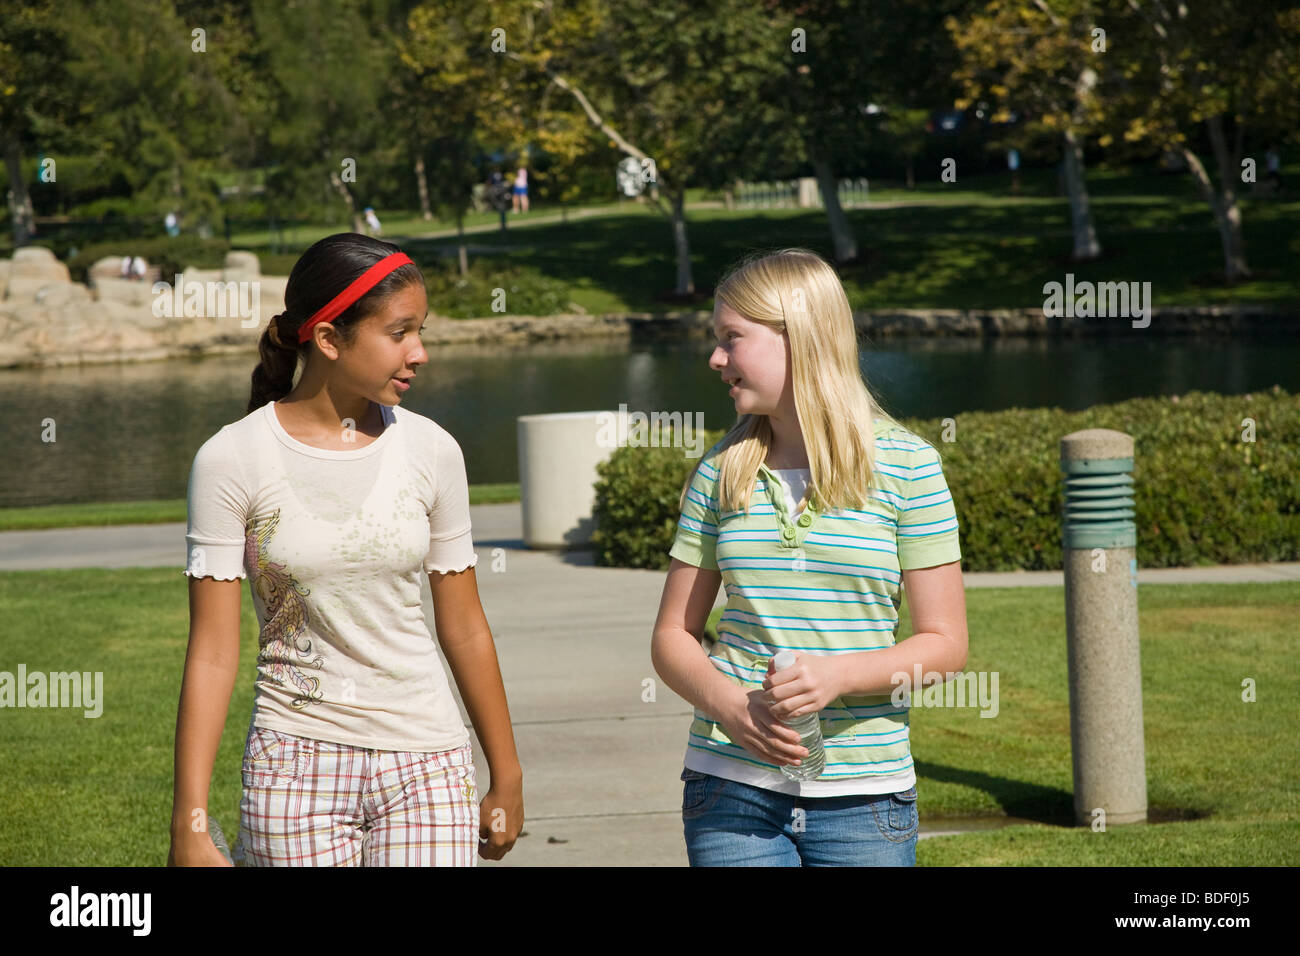 Two girls Racially mixed mix Ethnic diversity hang hanging out together Hispanic and Caucasian junior high girls - Stock Image